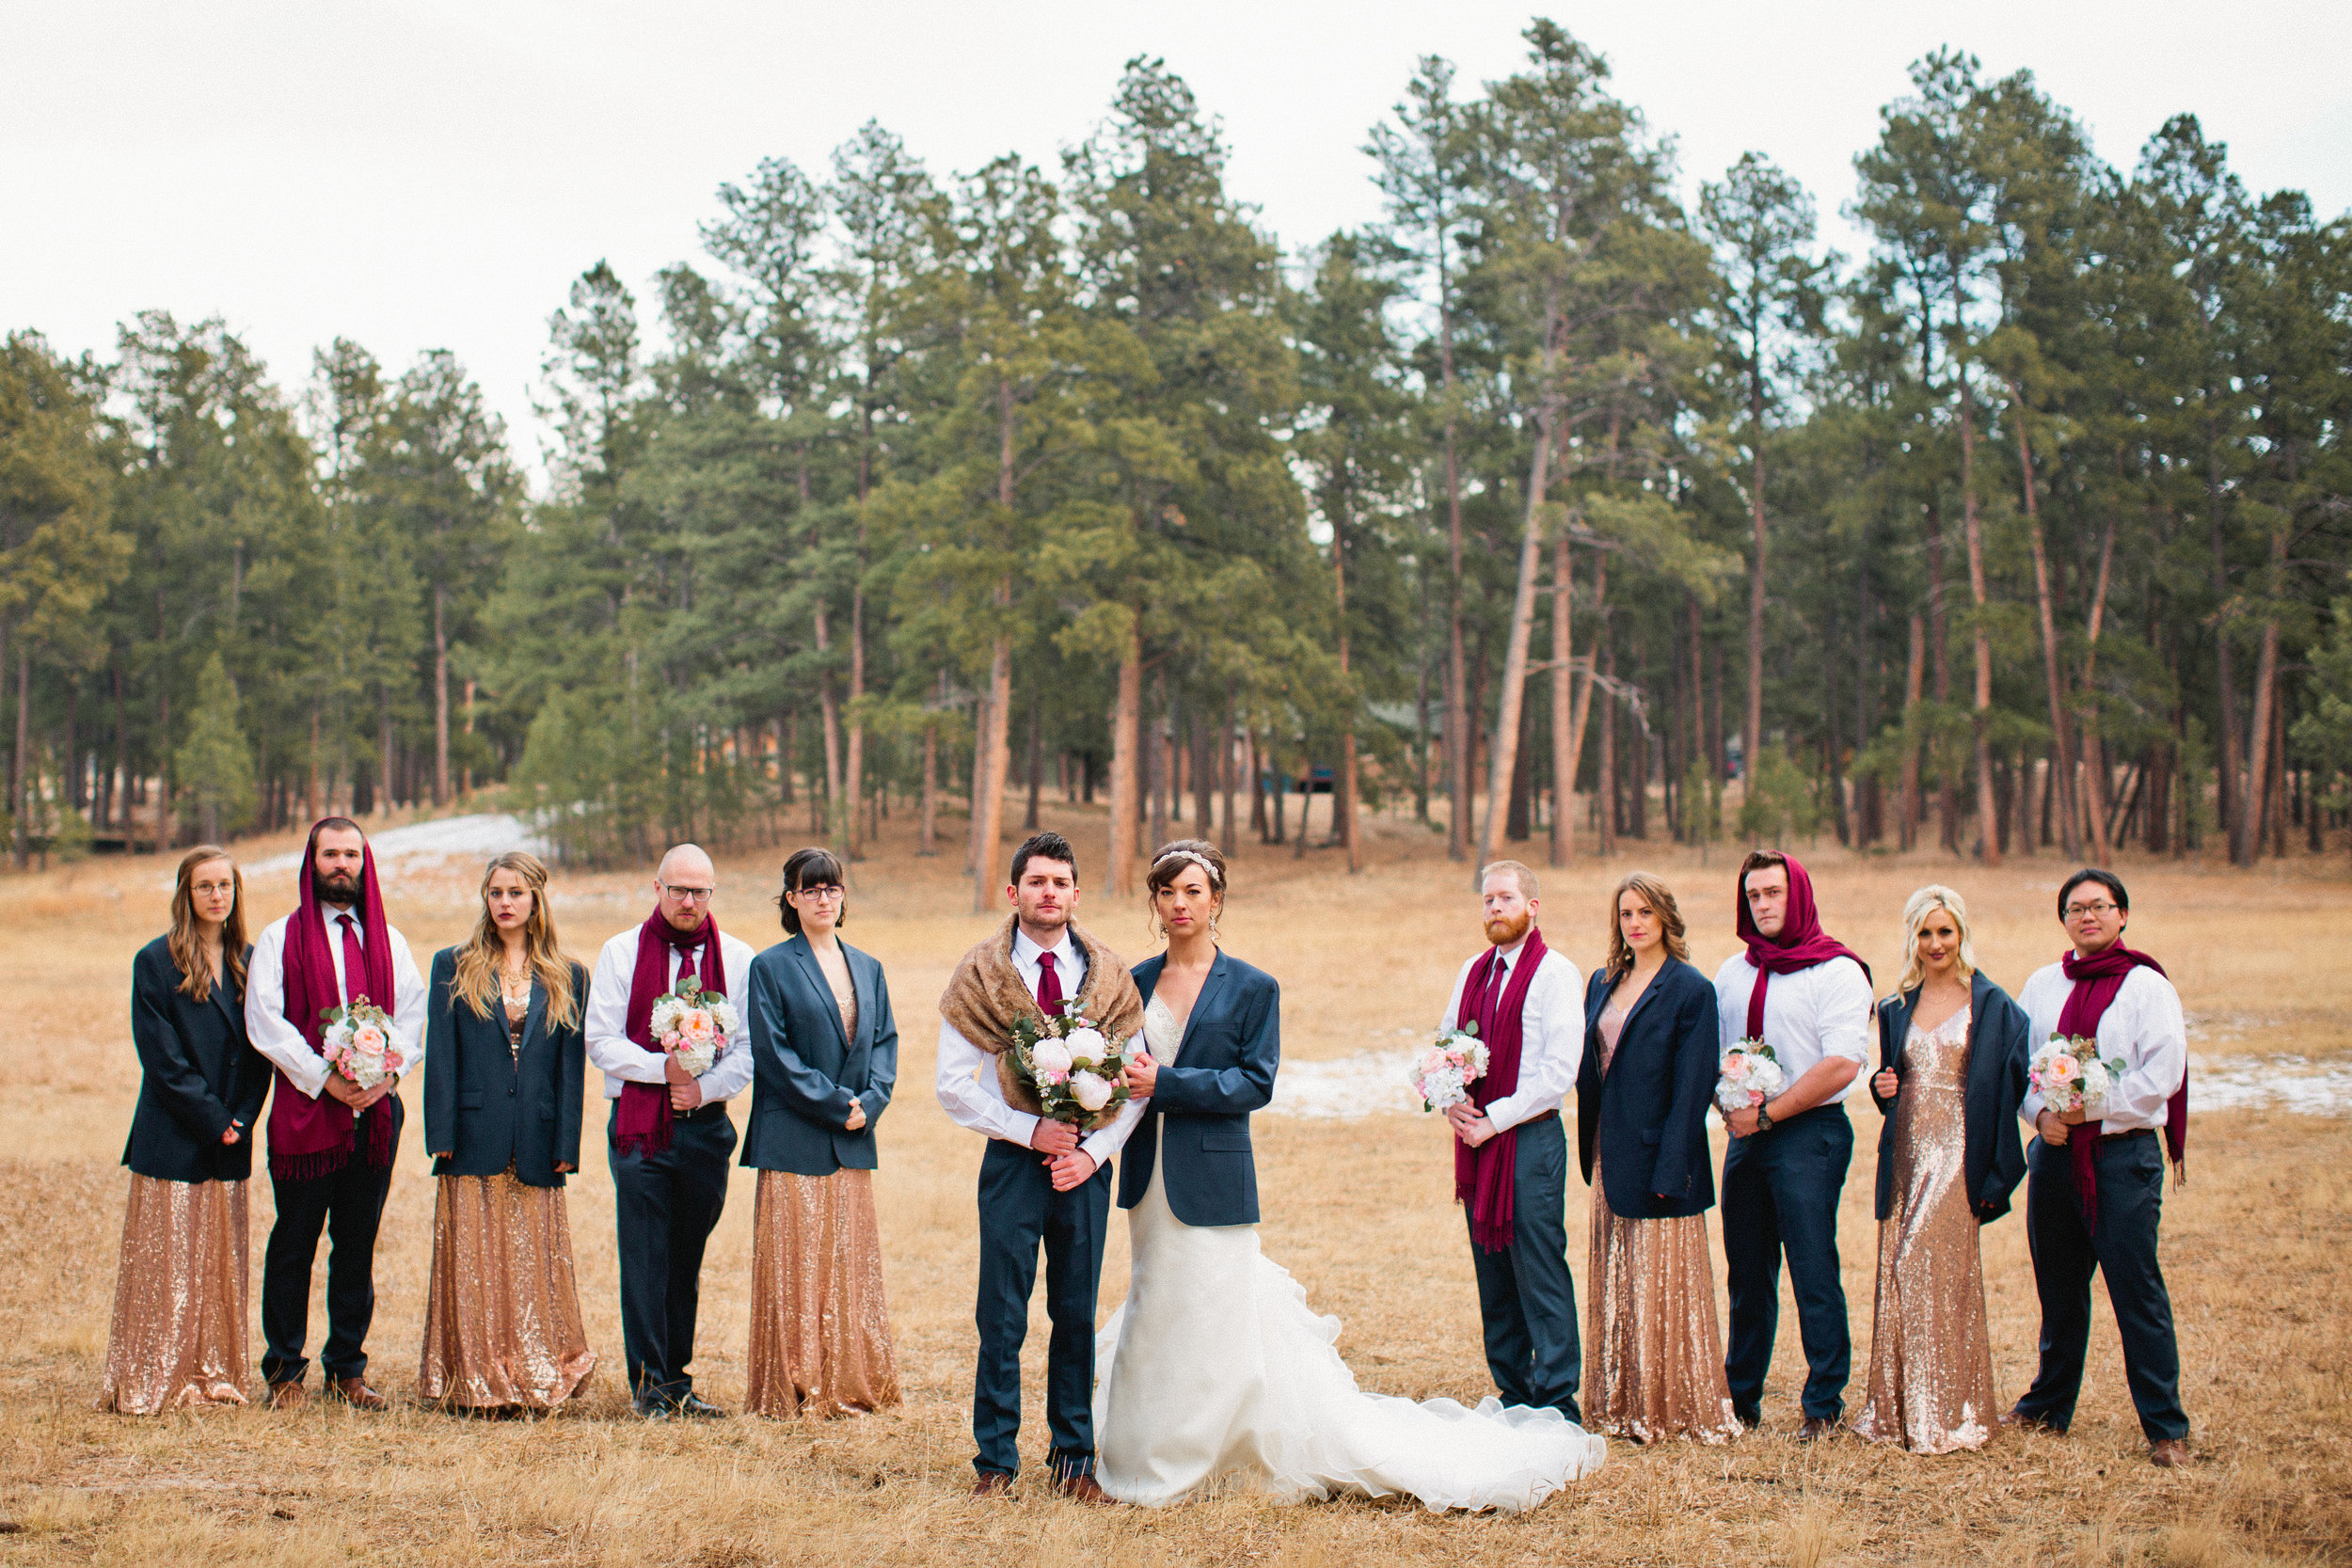 HILARIOUS bridal party photos! Amelia Renee is a professional photographer living in Des Moines and who also travels for weddings. She loves coffee shops (like Horizon Line Coffee) and french baked good from La Mie, and will hold any baby in sight.